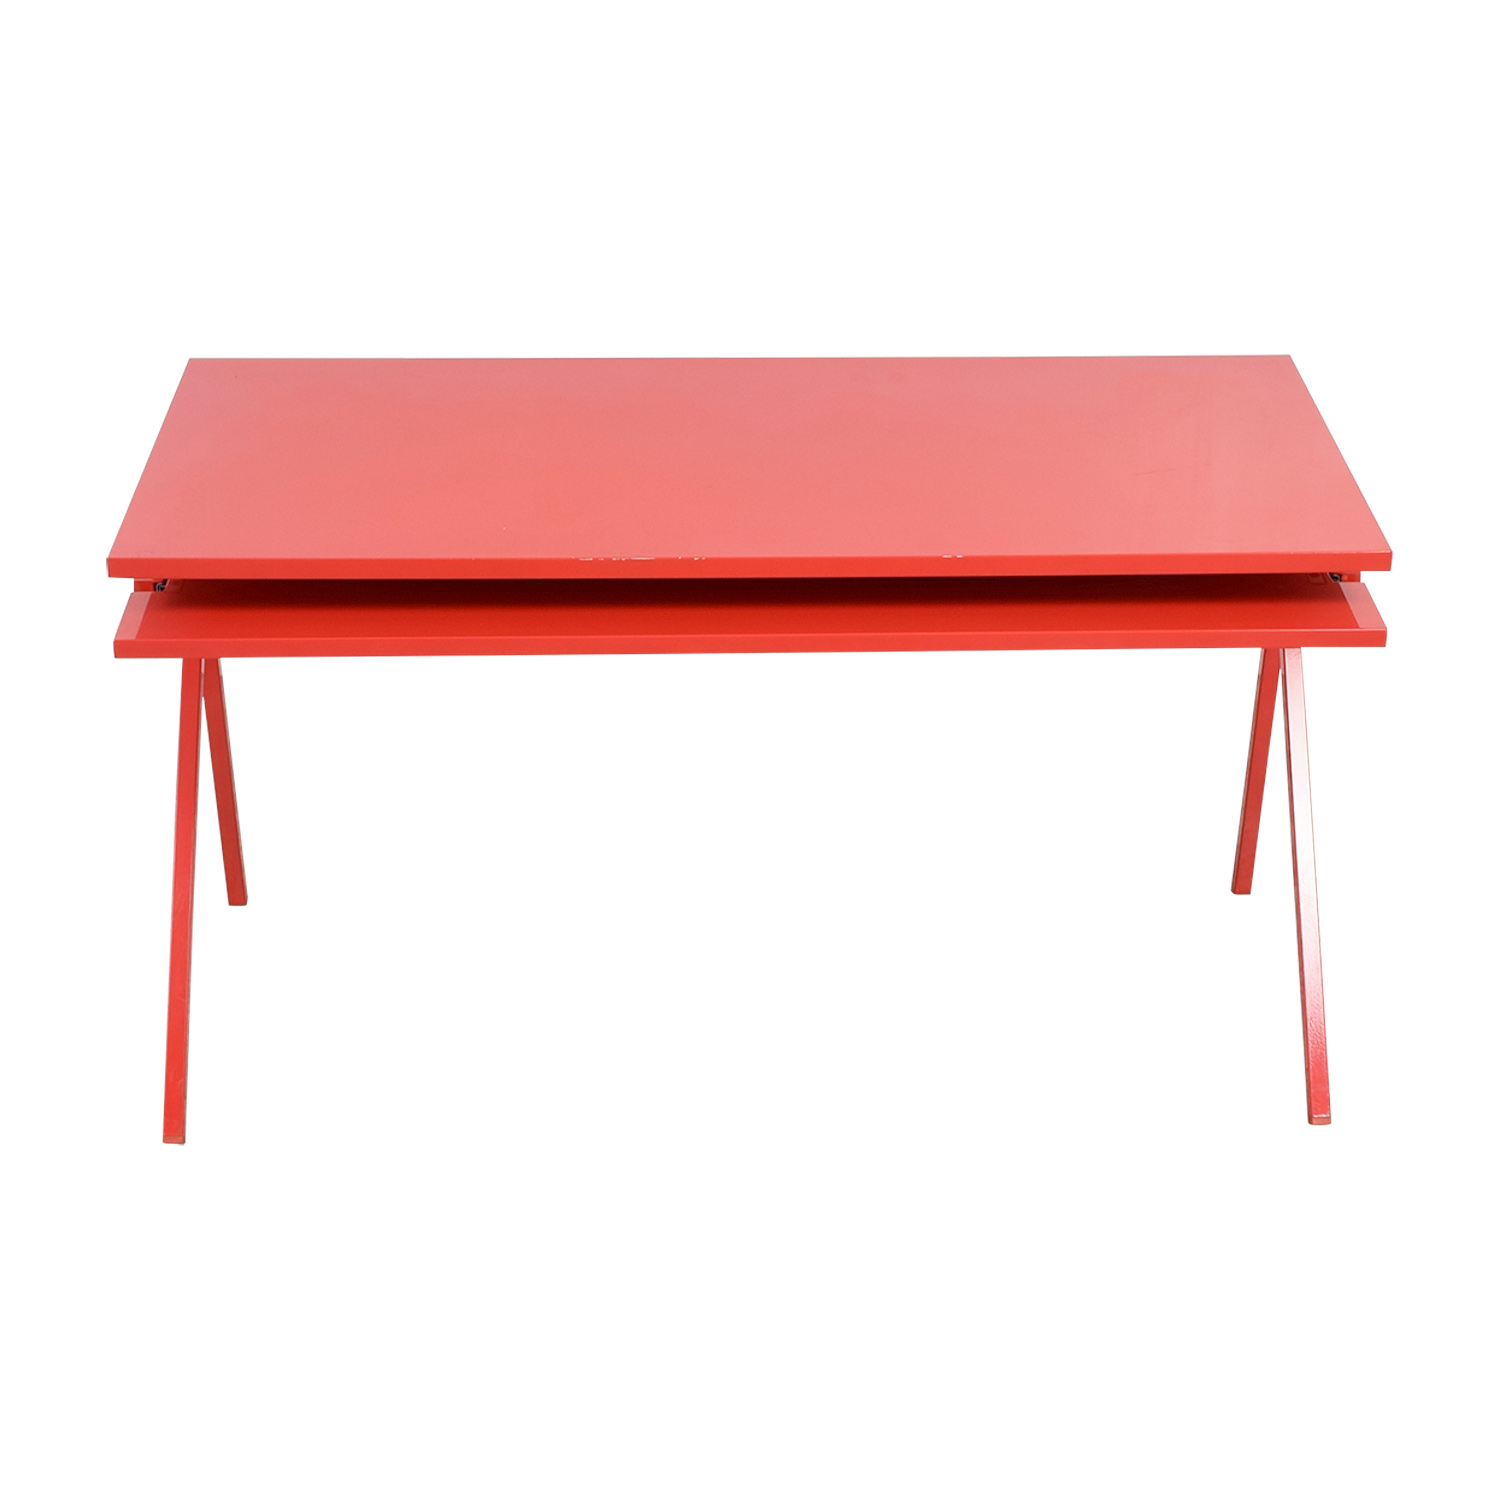 Blu Dot Blu Dot Red Desk 51 price